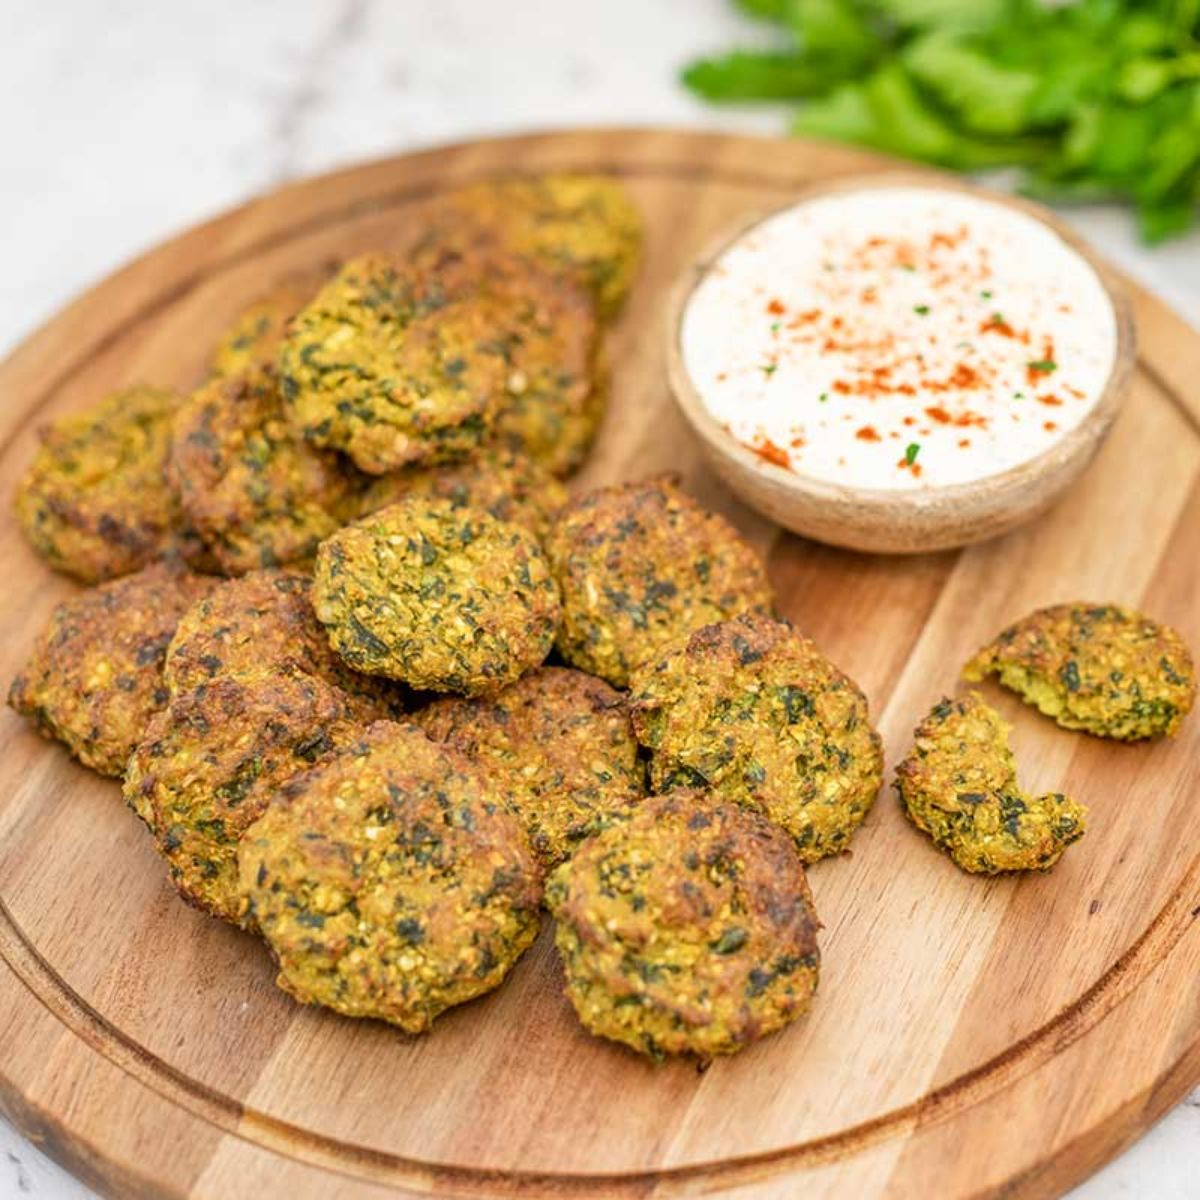 On a whote countertop is a round wooden board. On this is a pile of felafel, and a small bowl of white dip topped with paprika